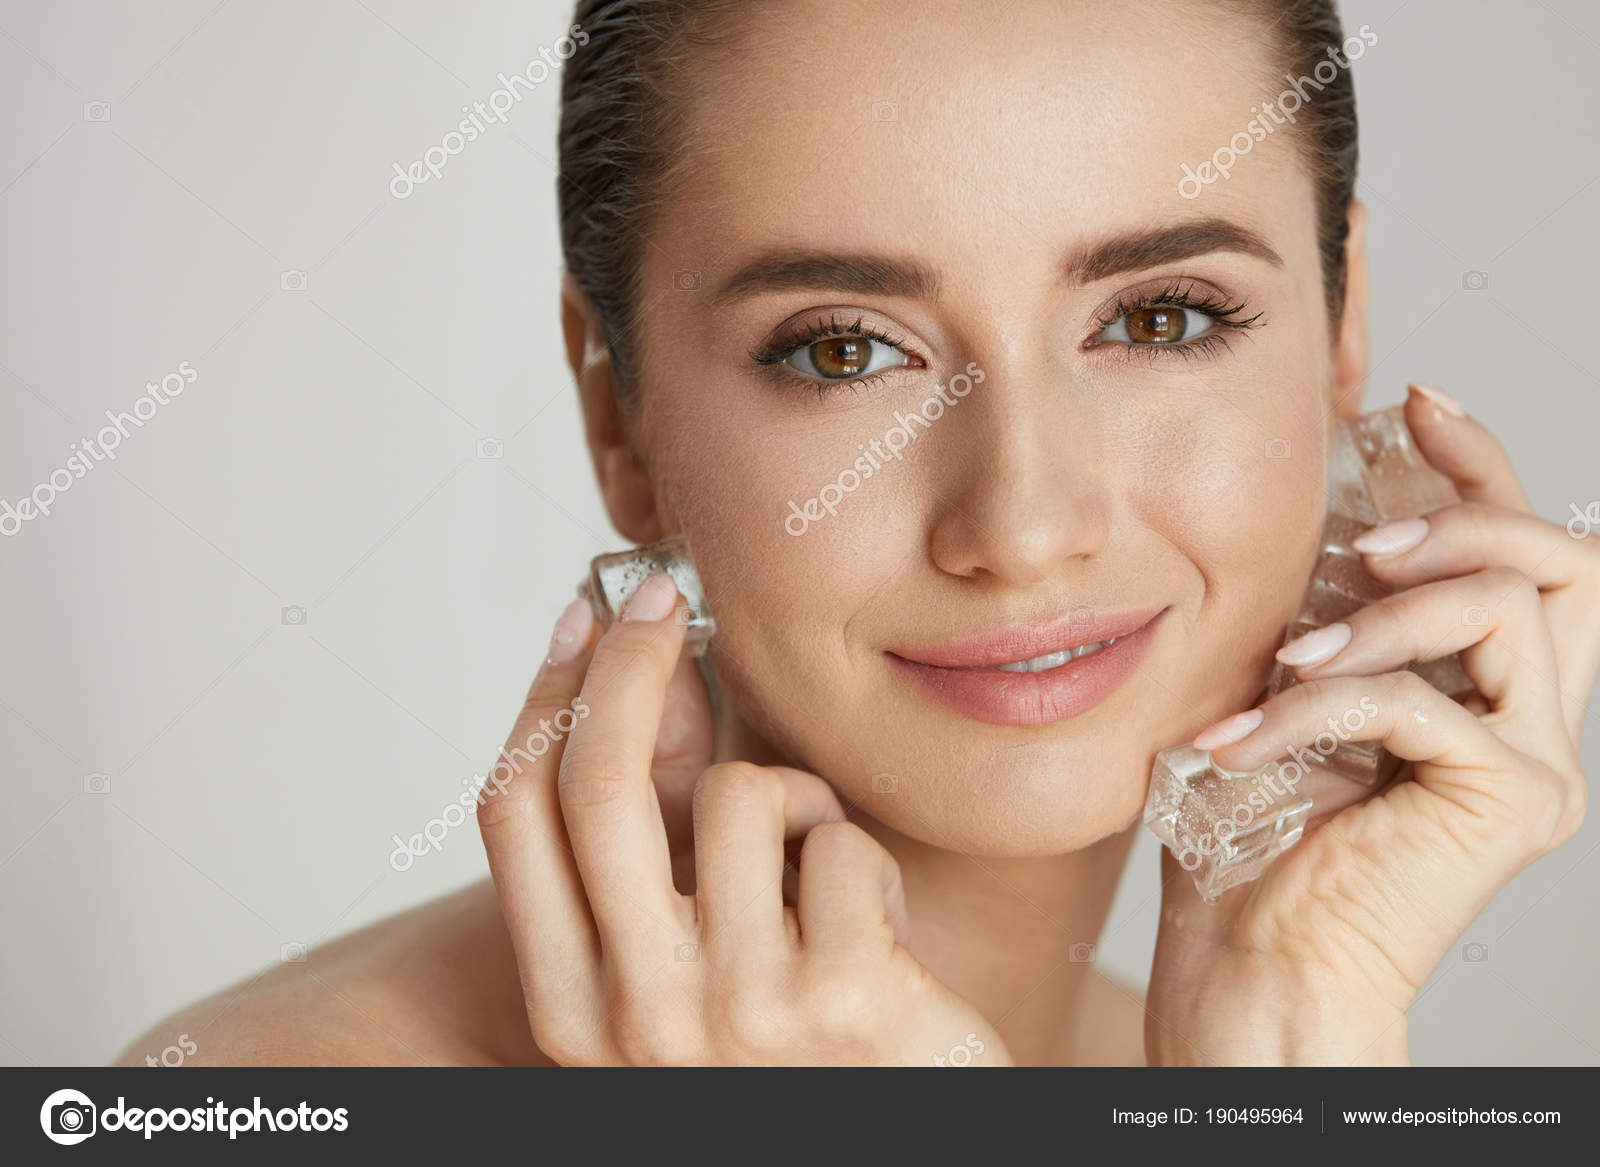 Have facial hand spa treatment congratulate